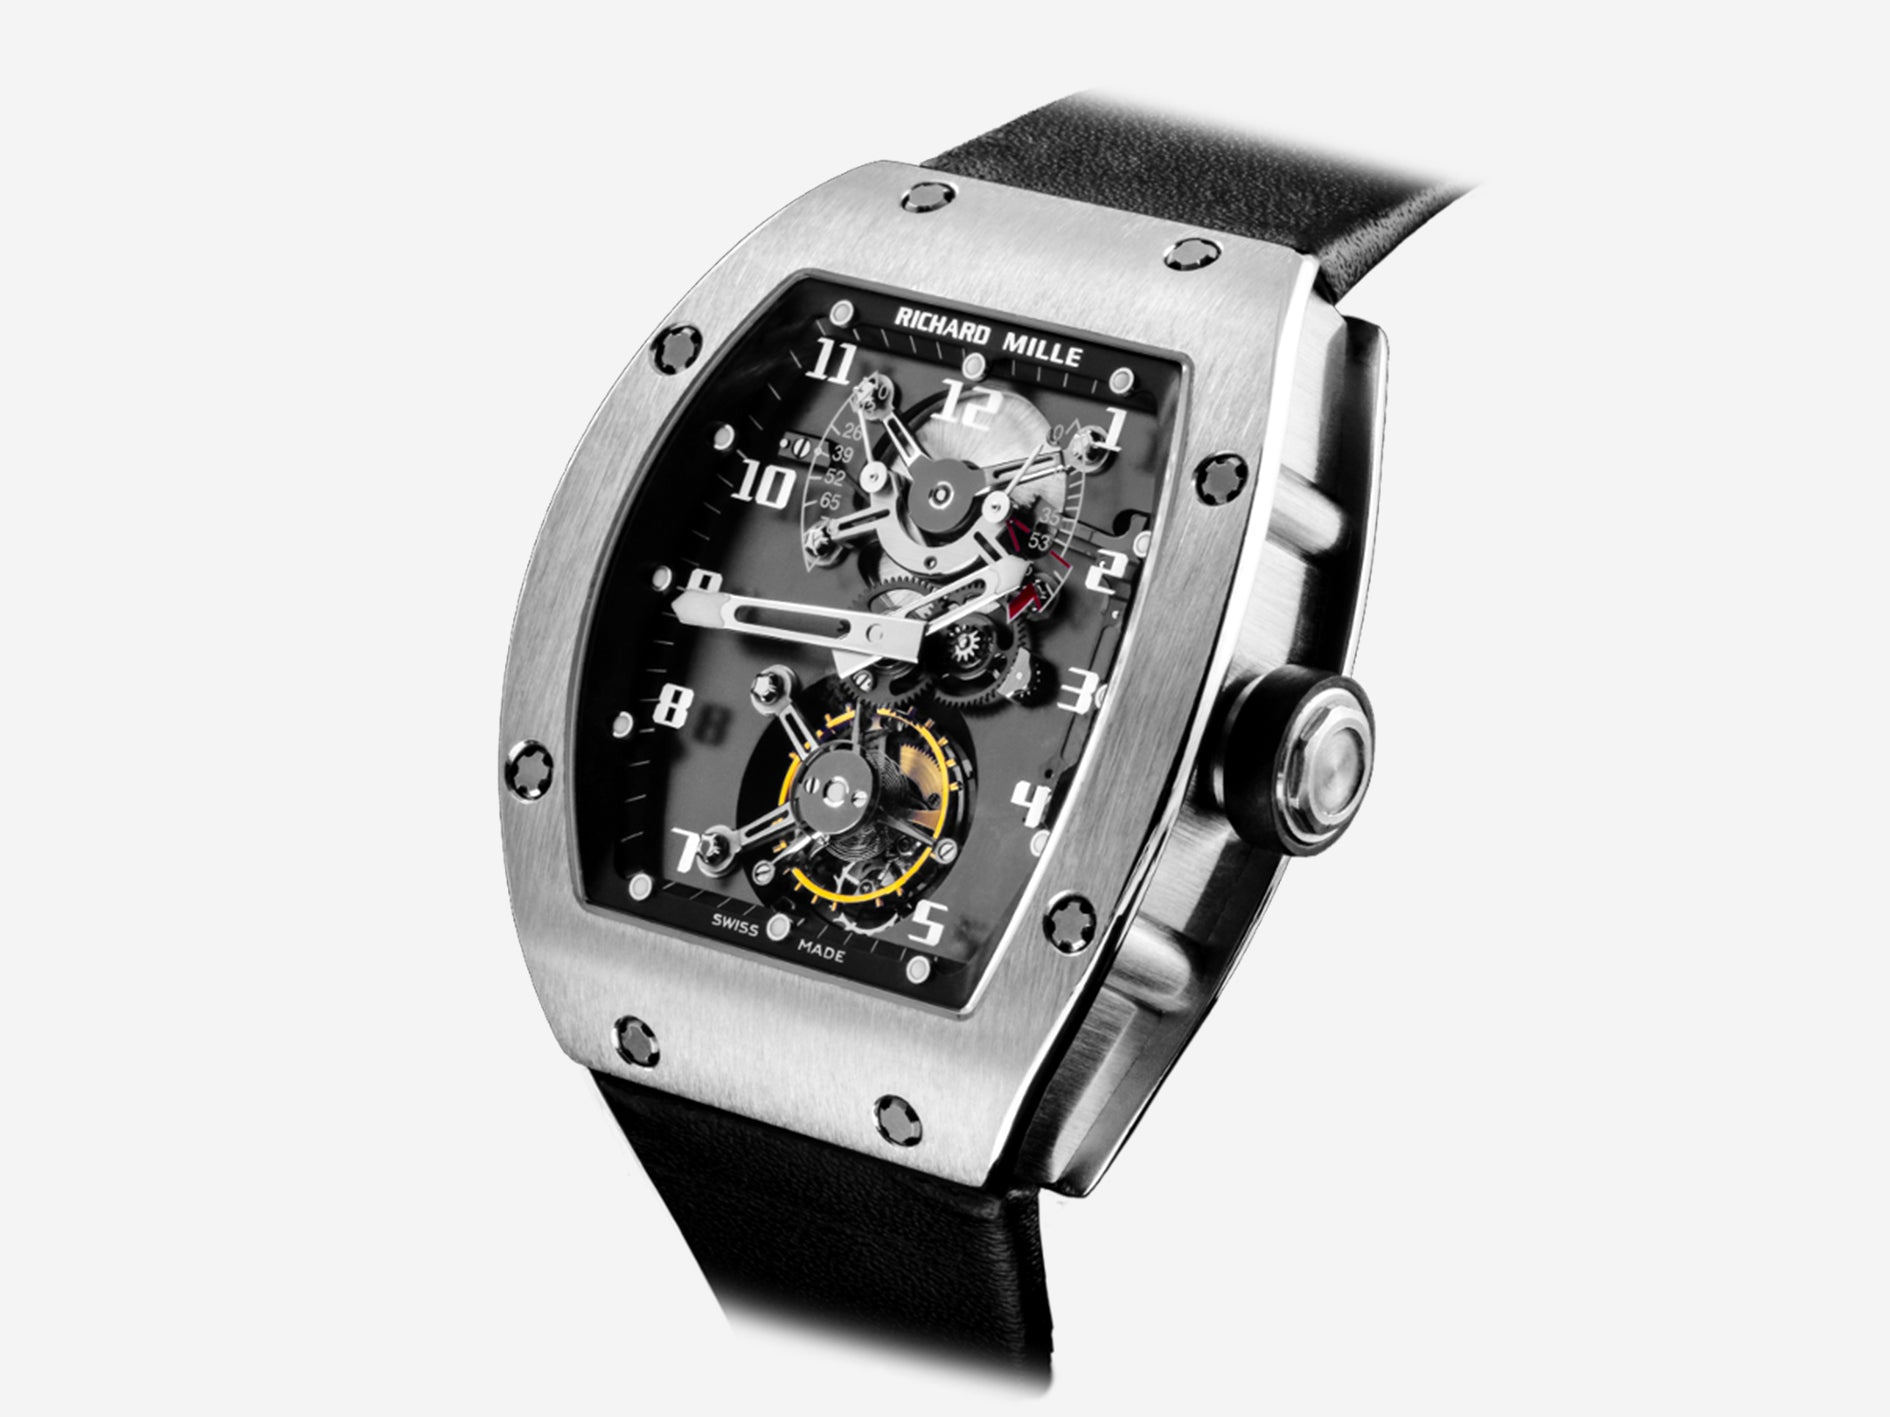 Richard Mille RM001 in white gold pre-production model for early Richard Mille for A Collected Man London